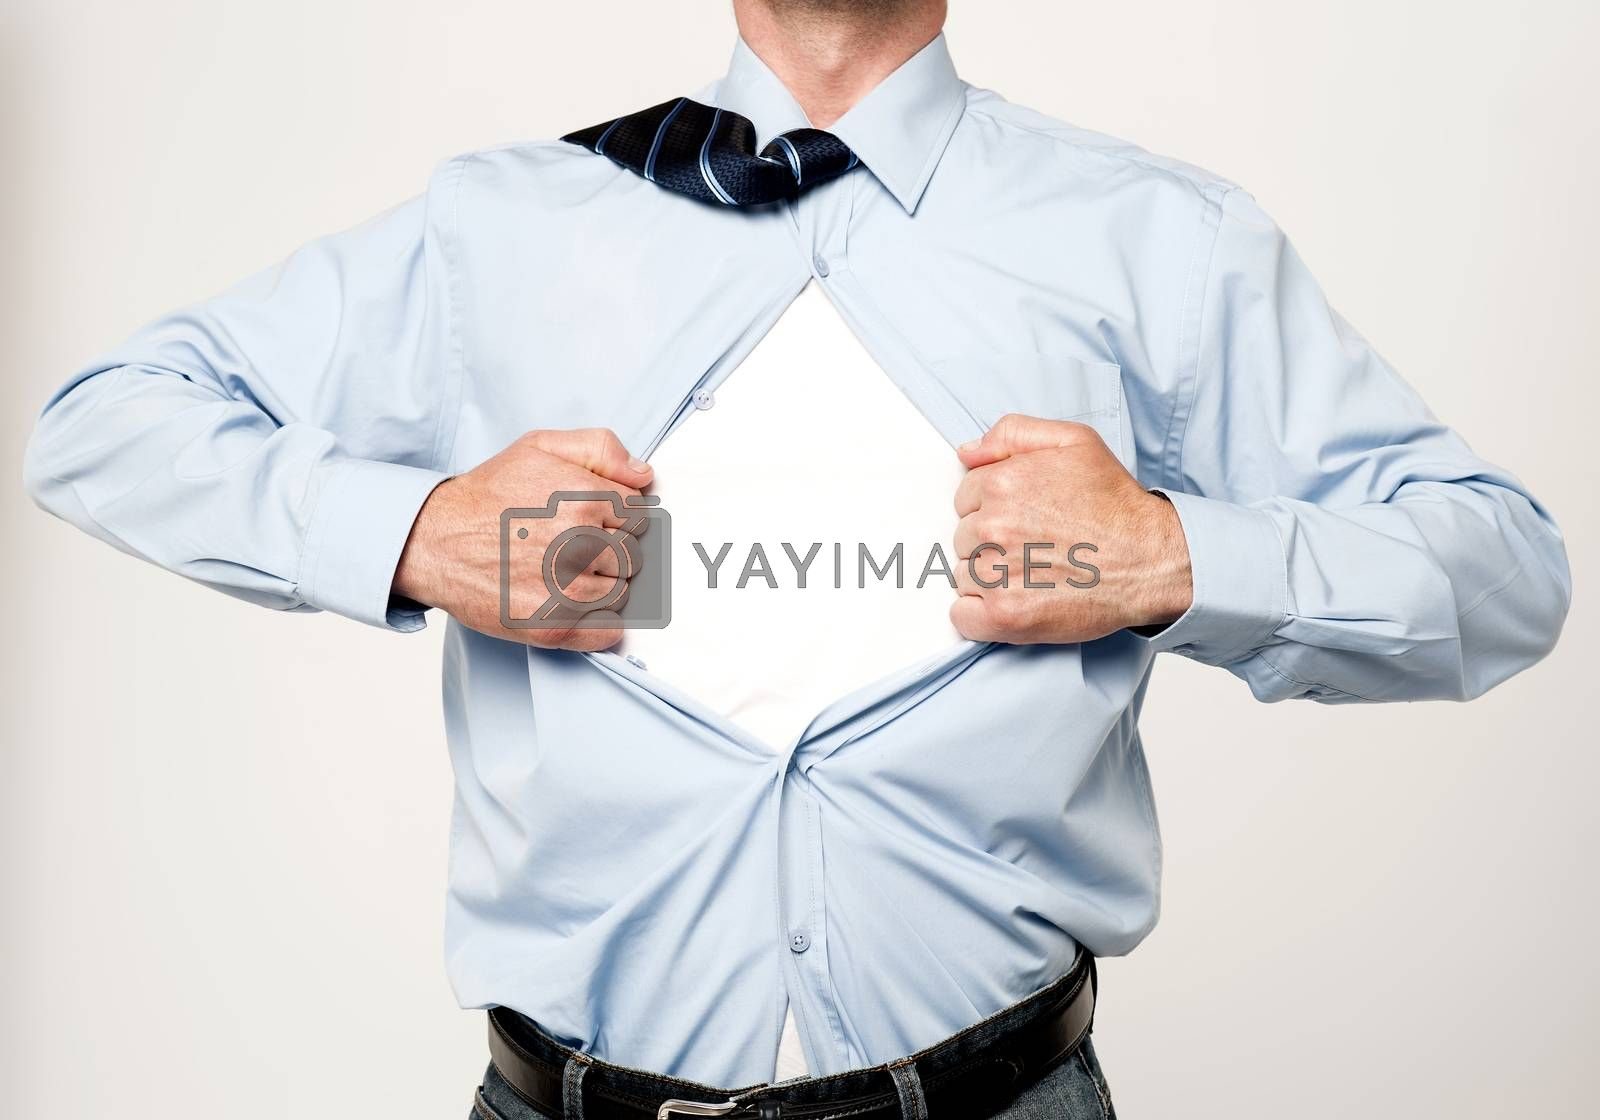 Superhero executive tearing his shirt by stockyimages